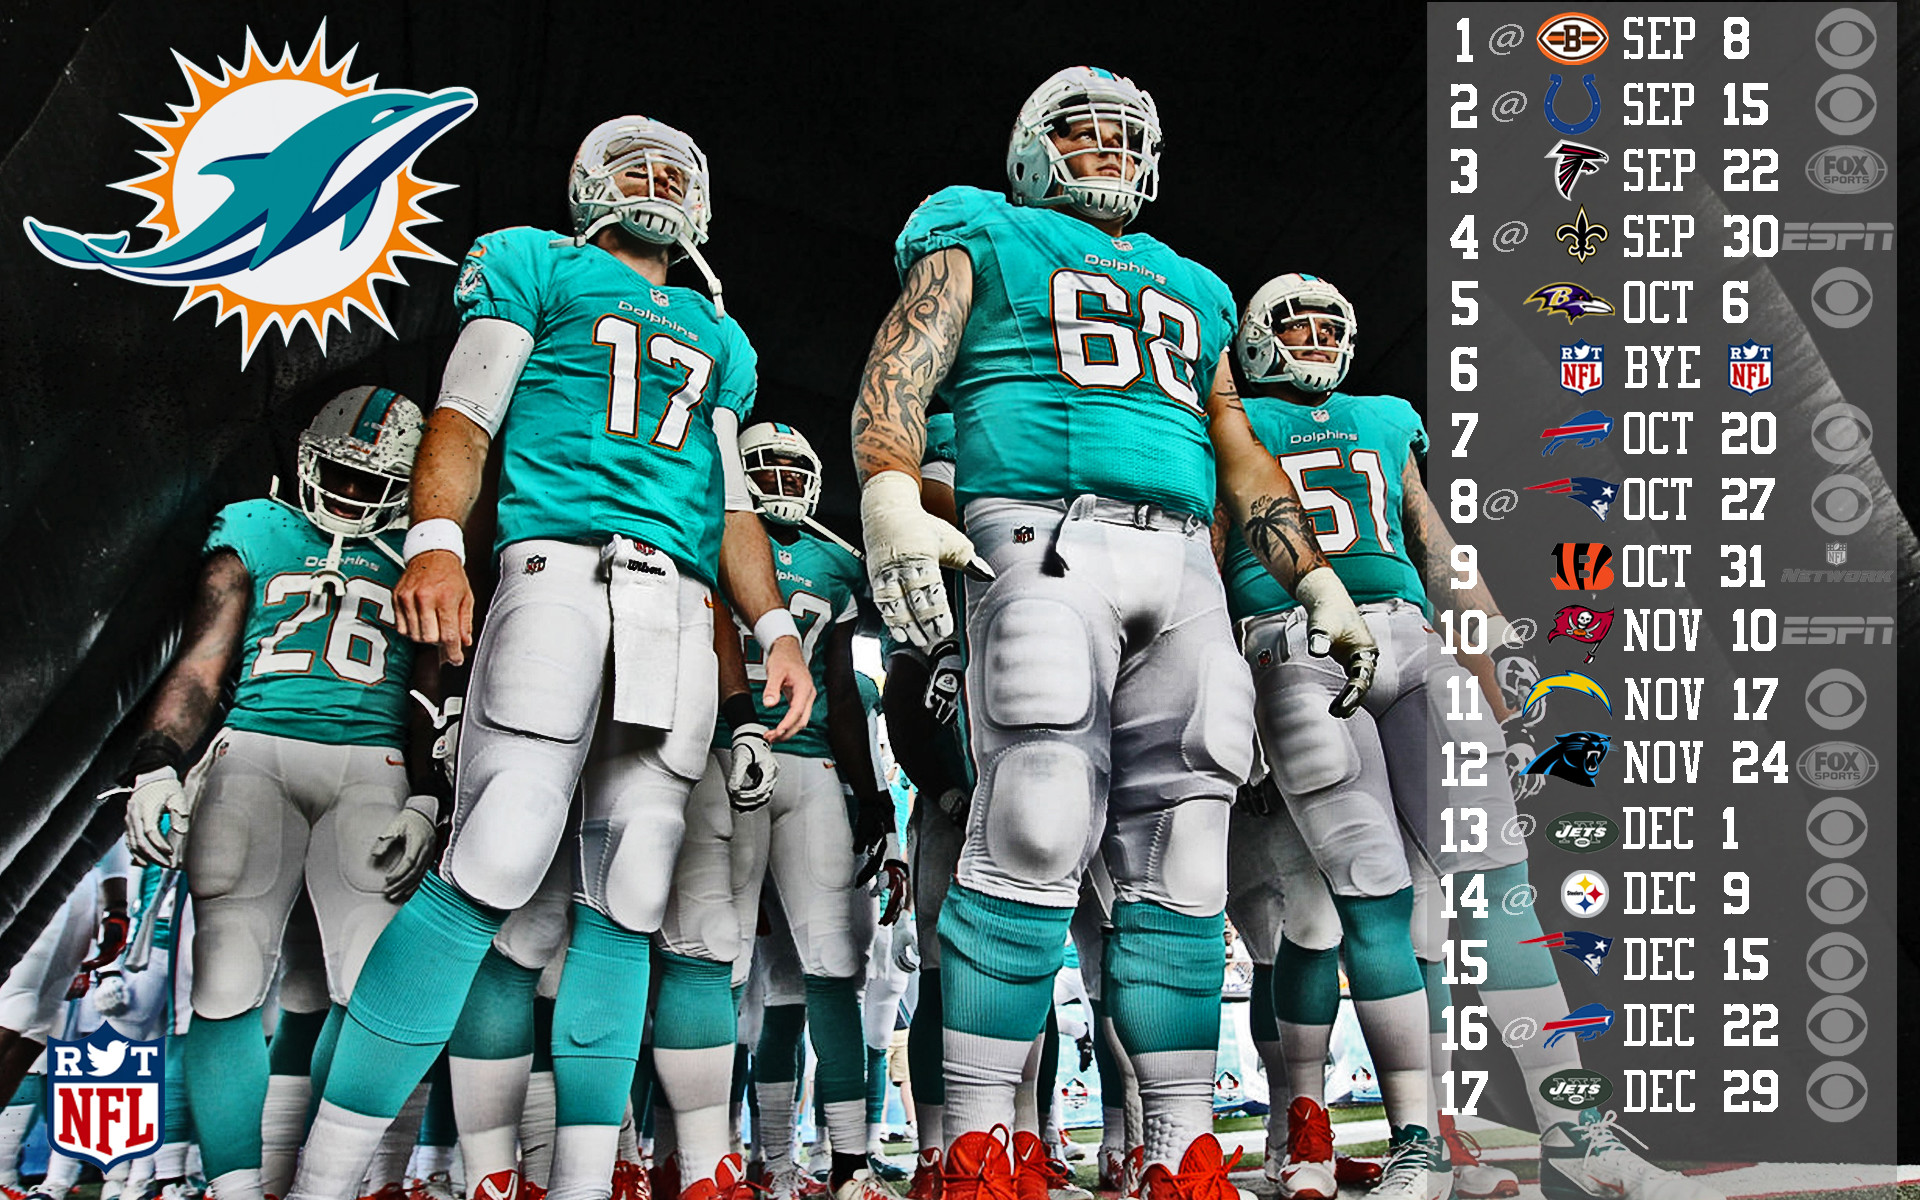 2013 Miami Dolphins football nfl g wallpaper     130415    WallpaperUP